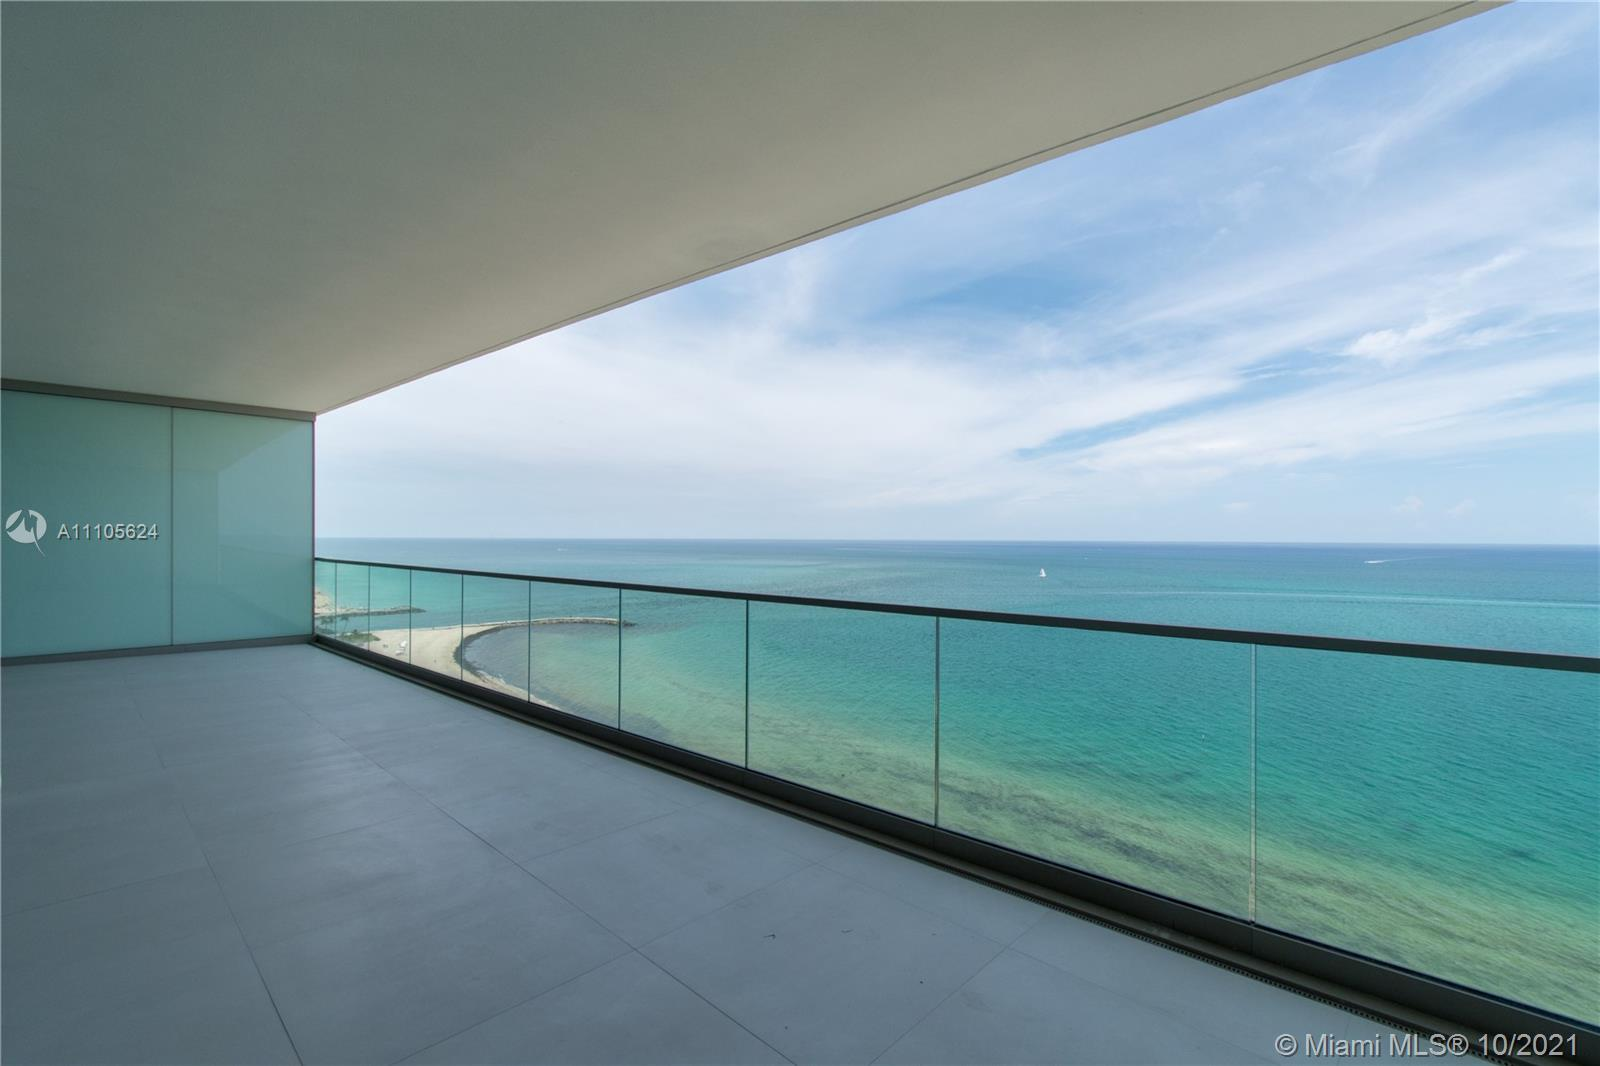 Welcome home! This spectacular east-west flow through Beachfront Residence features direct, unobstructed, phenomenal ocean, intracoastal and panoramic city views, a fantastic floor plan, private elevator opening directly into your unit, two oversized private terraces, 10 foot ceilings, floor to ceiling extra wide windows and sliding doors to maximize and optimize your views, smart system, beautiful finishes such as imported porcelain floors throughout, a gourmet kitchen, modern bathrooms, custom closets and motorized window treatment located at prestigious Oceana Bal Harbour offering a 5-star lifestyle living with all your needs and desires at your fingertips, 24-hour valet & concierge, beach and pool side restaurant, world-class spa, theater, social room, cabanas and two luxury size pools